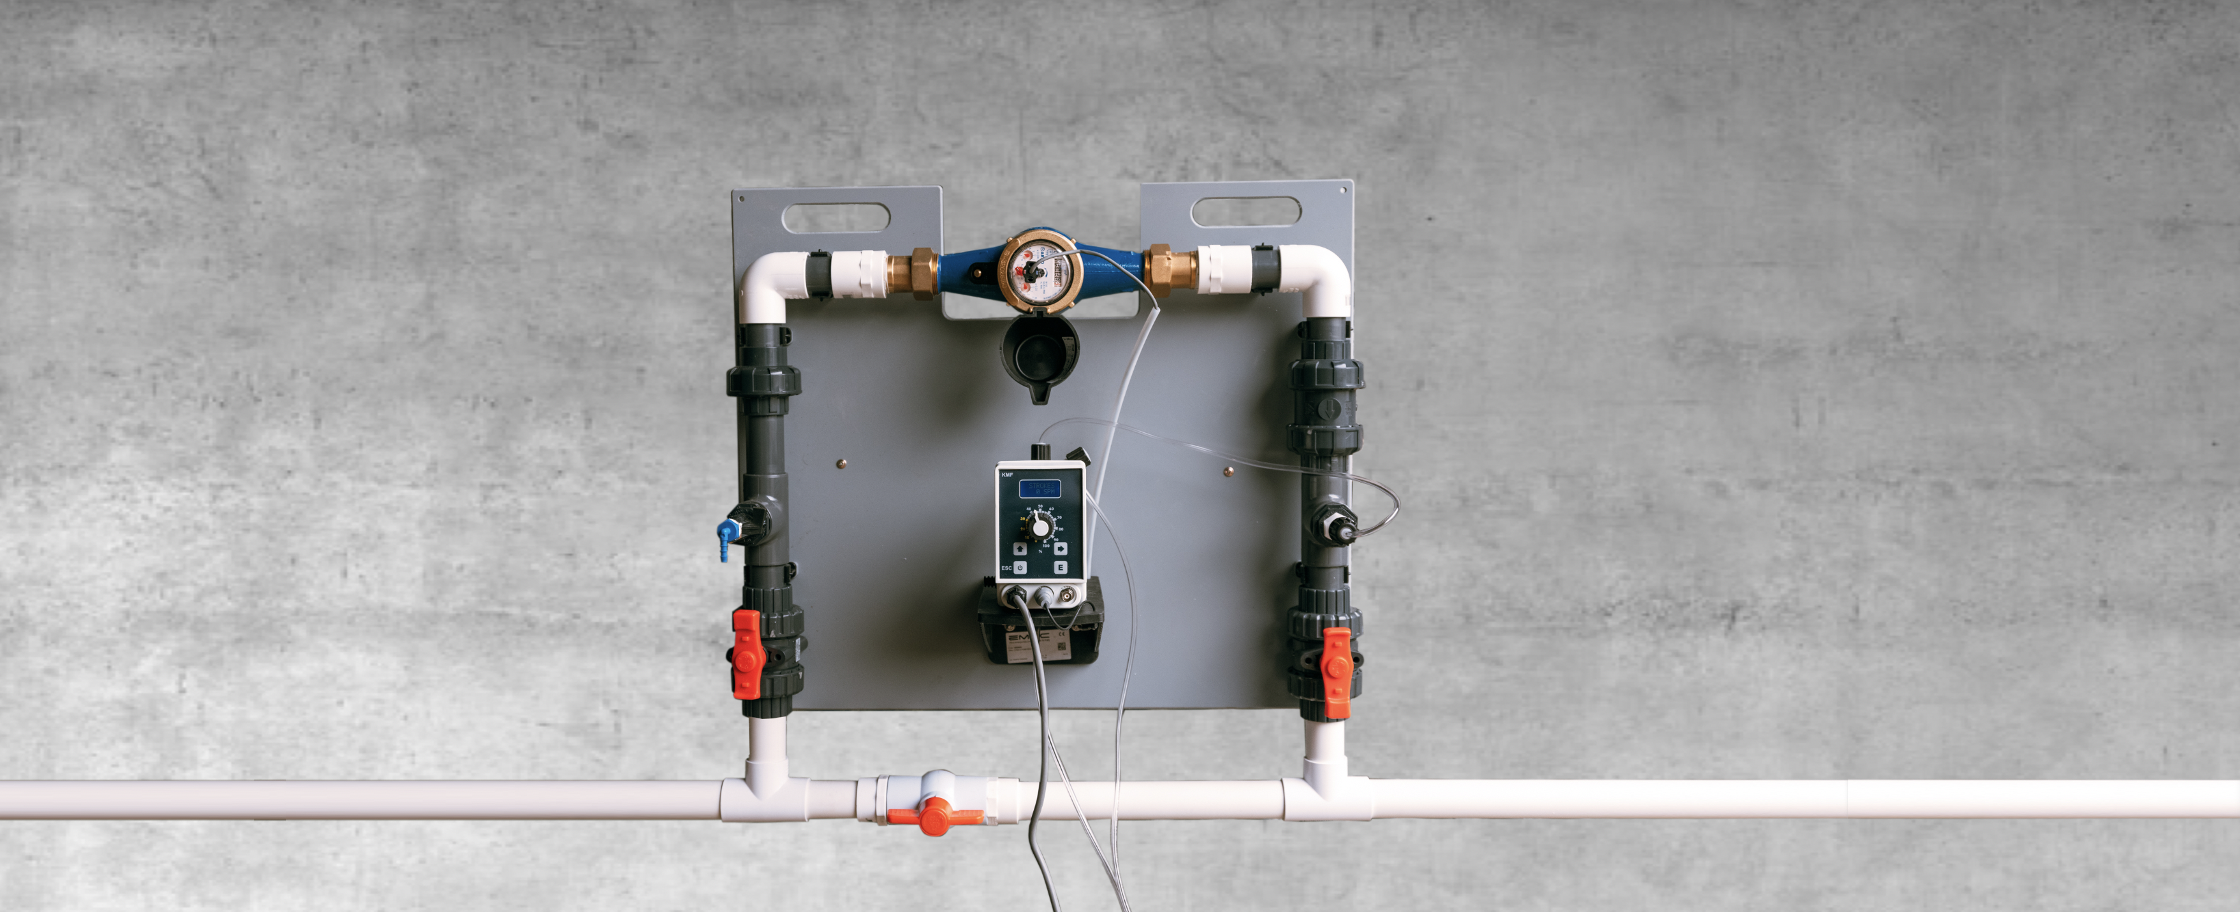 The ZamiGuard Clean Water system requires a water flow meter communicating to a dosing pump, to ensure the correct concentration is injected into the waterline.